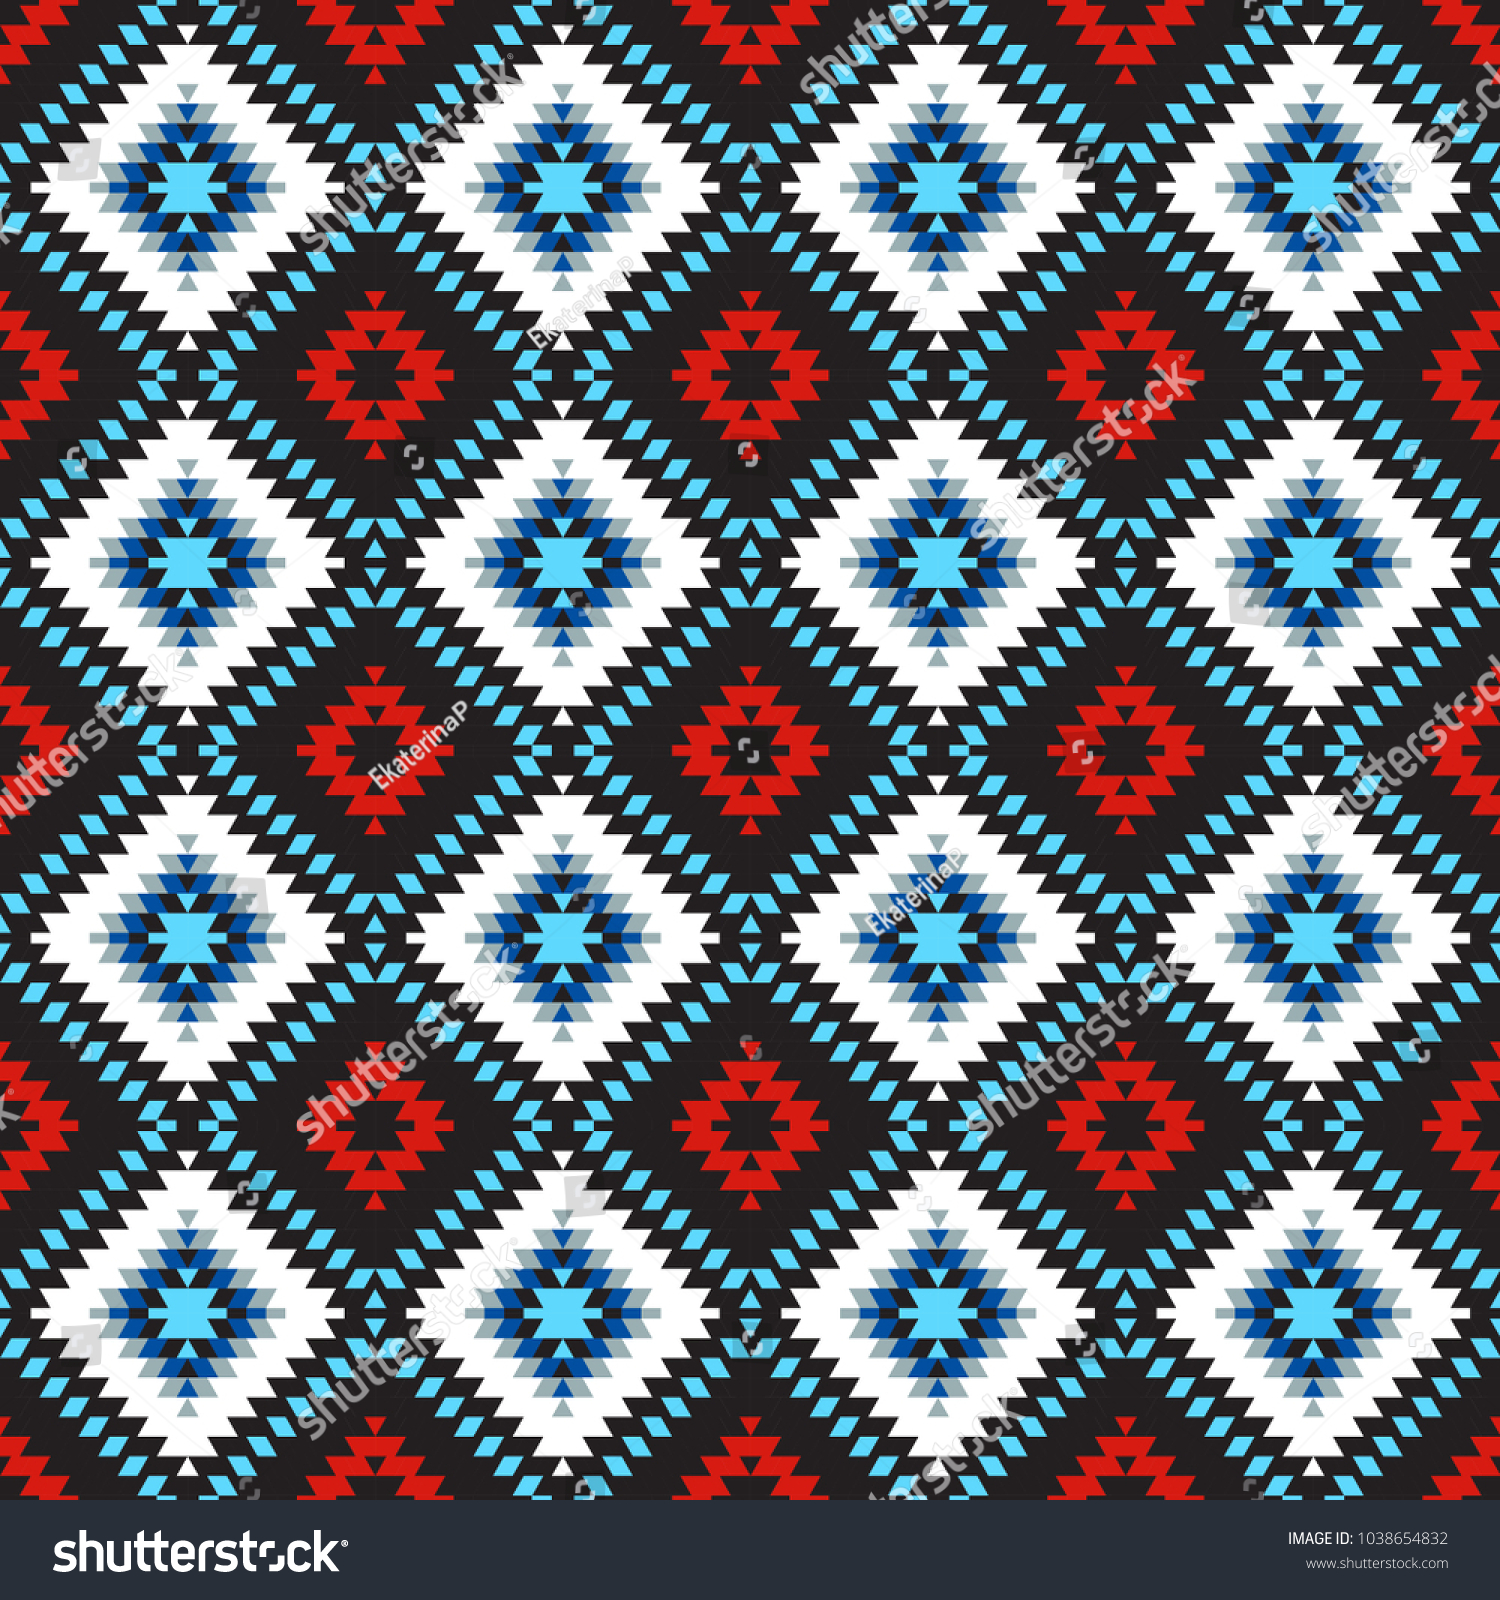 Seamless Pattern Turkish Carpet Blue White Red Black Colorful Patchwork Mosaic Oriental Kilim Rug With